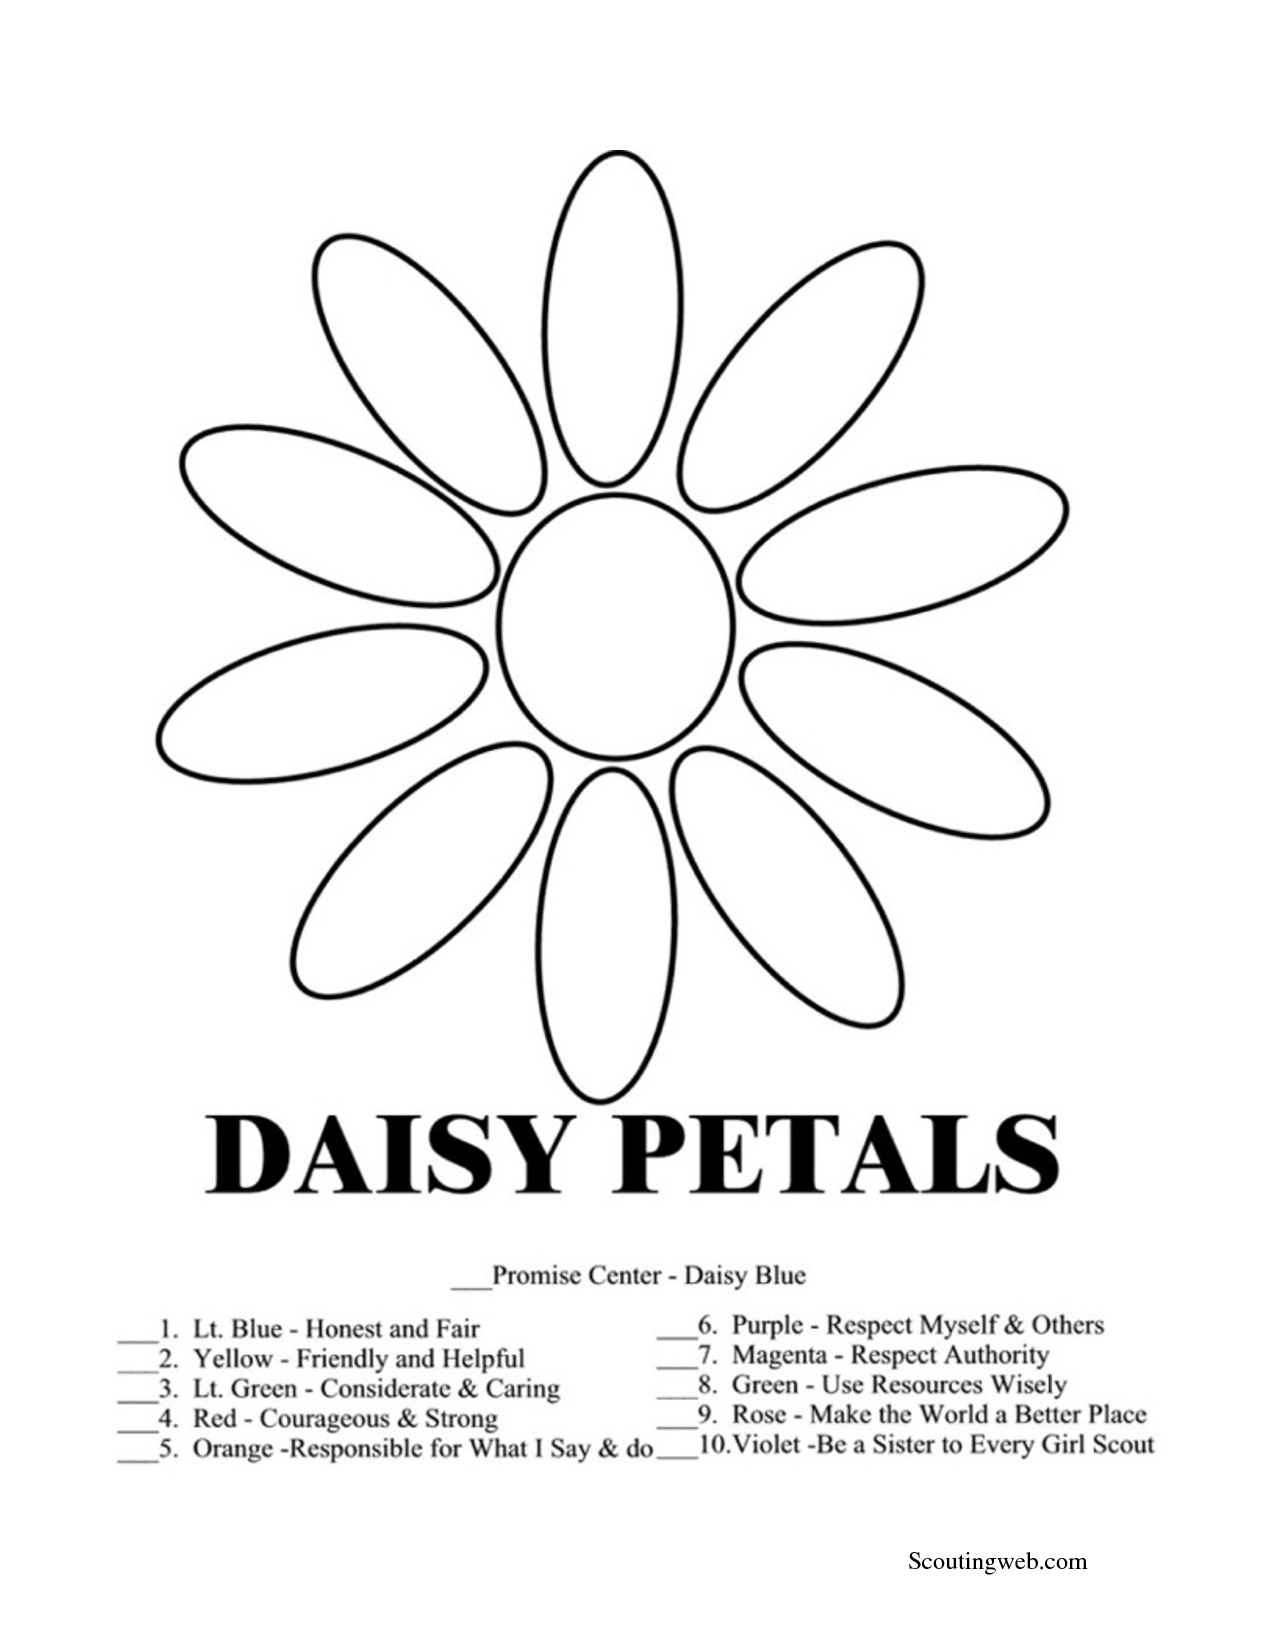 Petals coloring #16, Download drawings